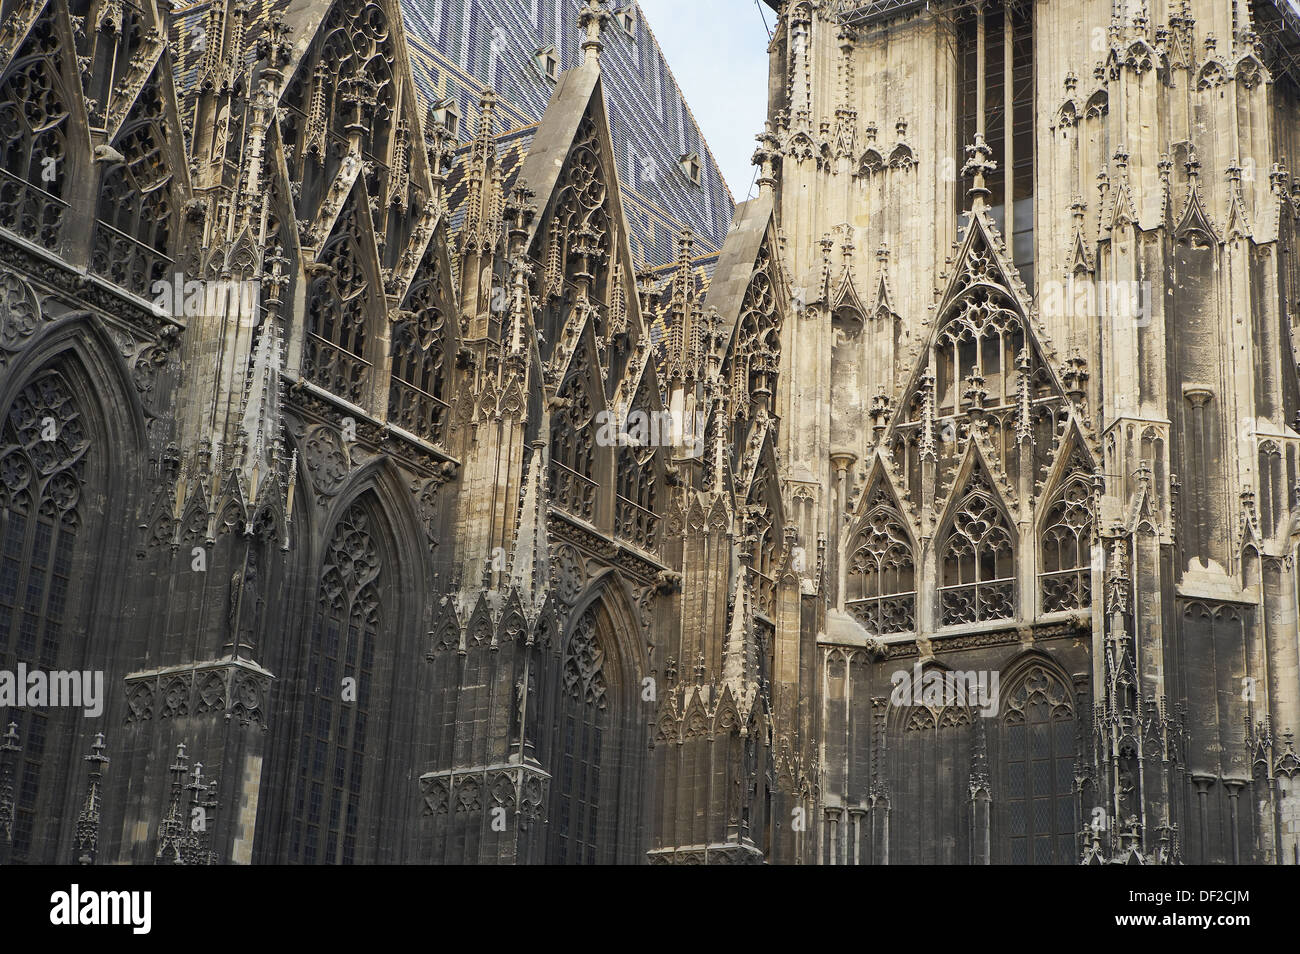 Stephansdom (Cathedral of Saint Stephen), Vienna. Austria - Stock Image